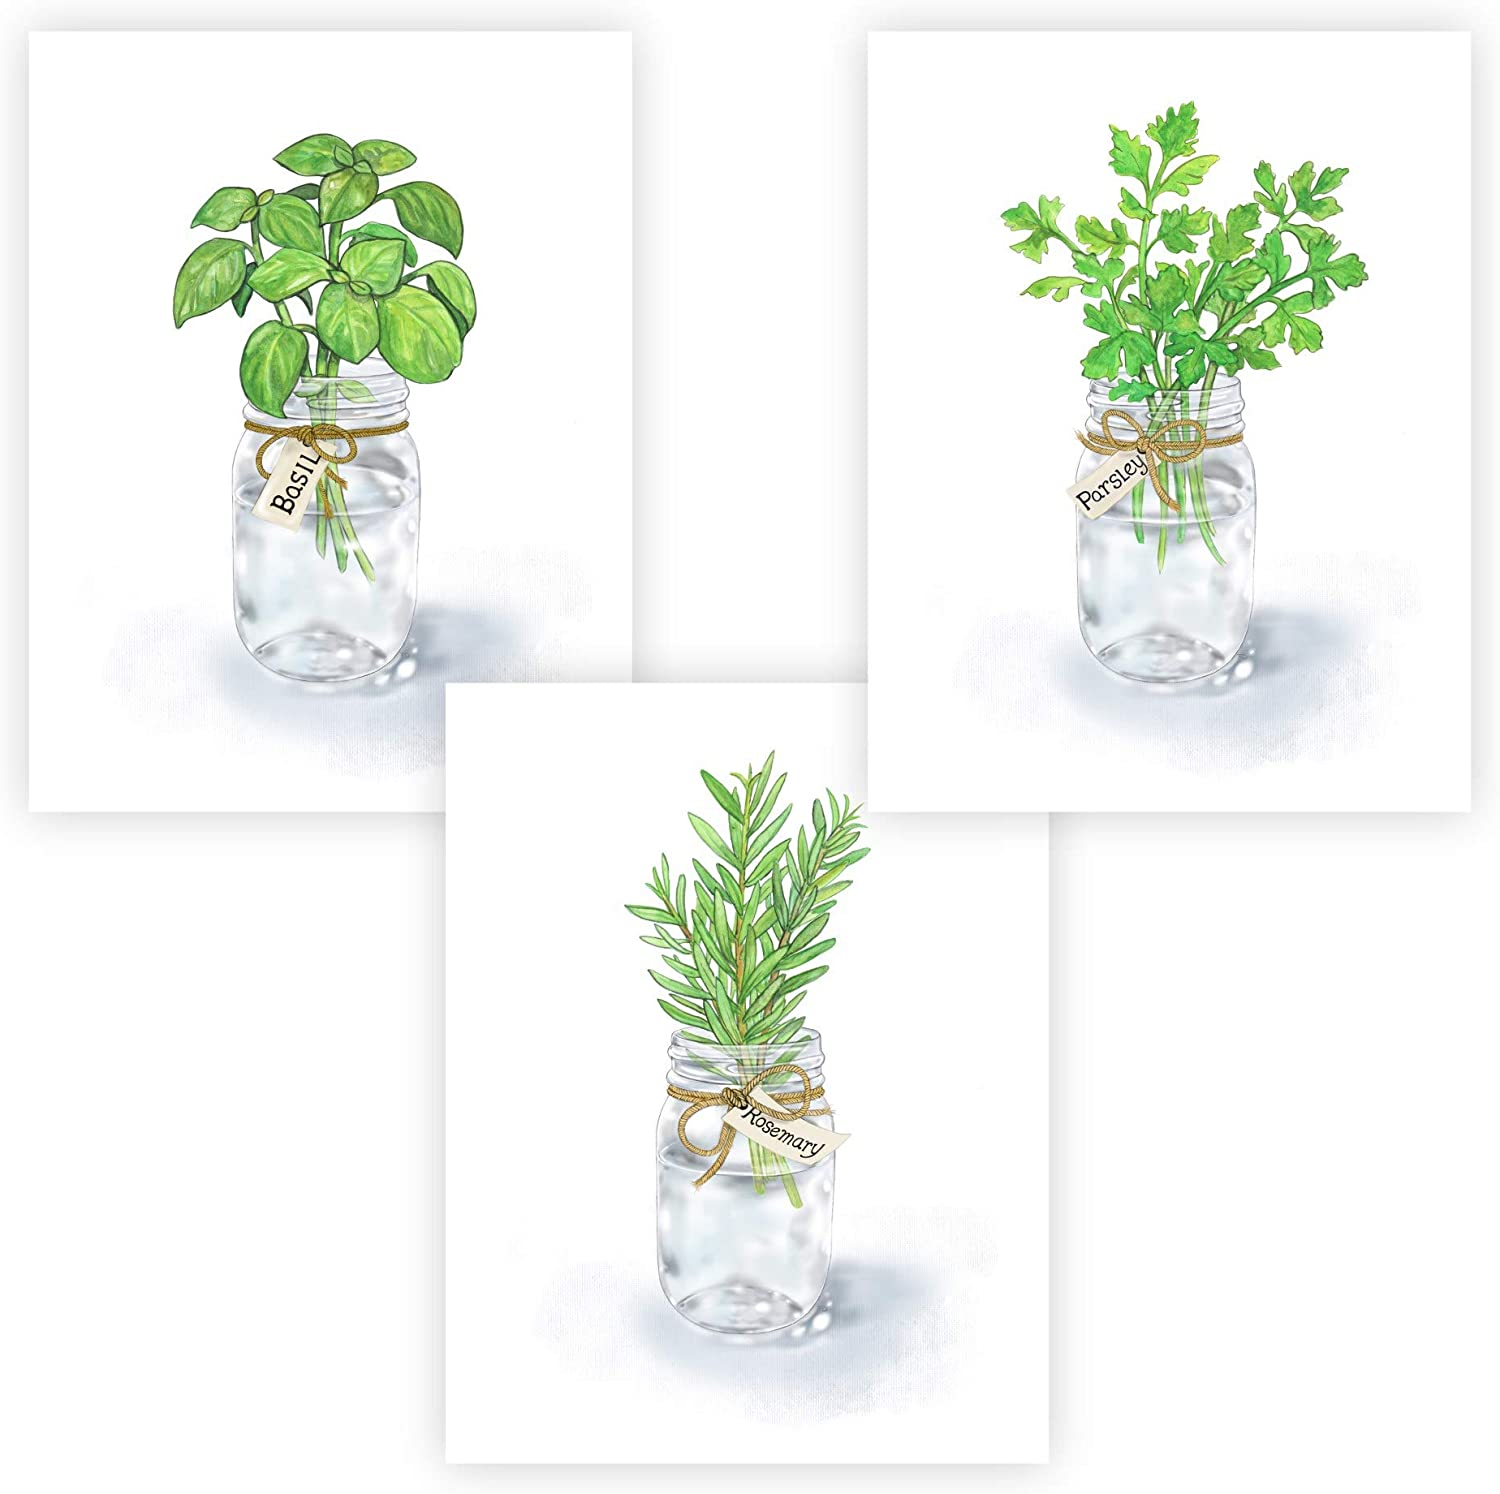 "FannyD Kitchen Herbs UNFRAMED Watercolor Art 3 Print Set 8.5"" x 11"" Perfect for Bedroom, Bathroom, Kitchen, Nursery etc. Can Be Framed 8"" x 10"" or Larger with mat. Unique Wall Decor!! (Herbs 1 Green)"